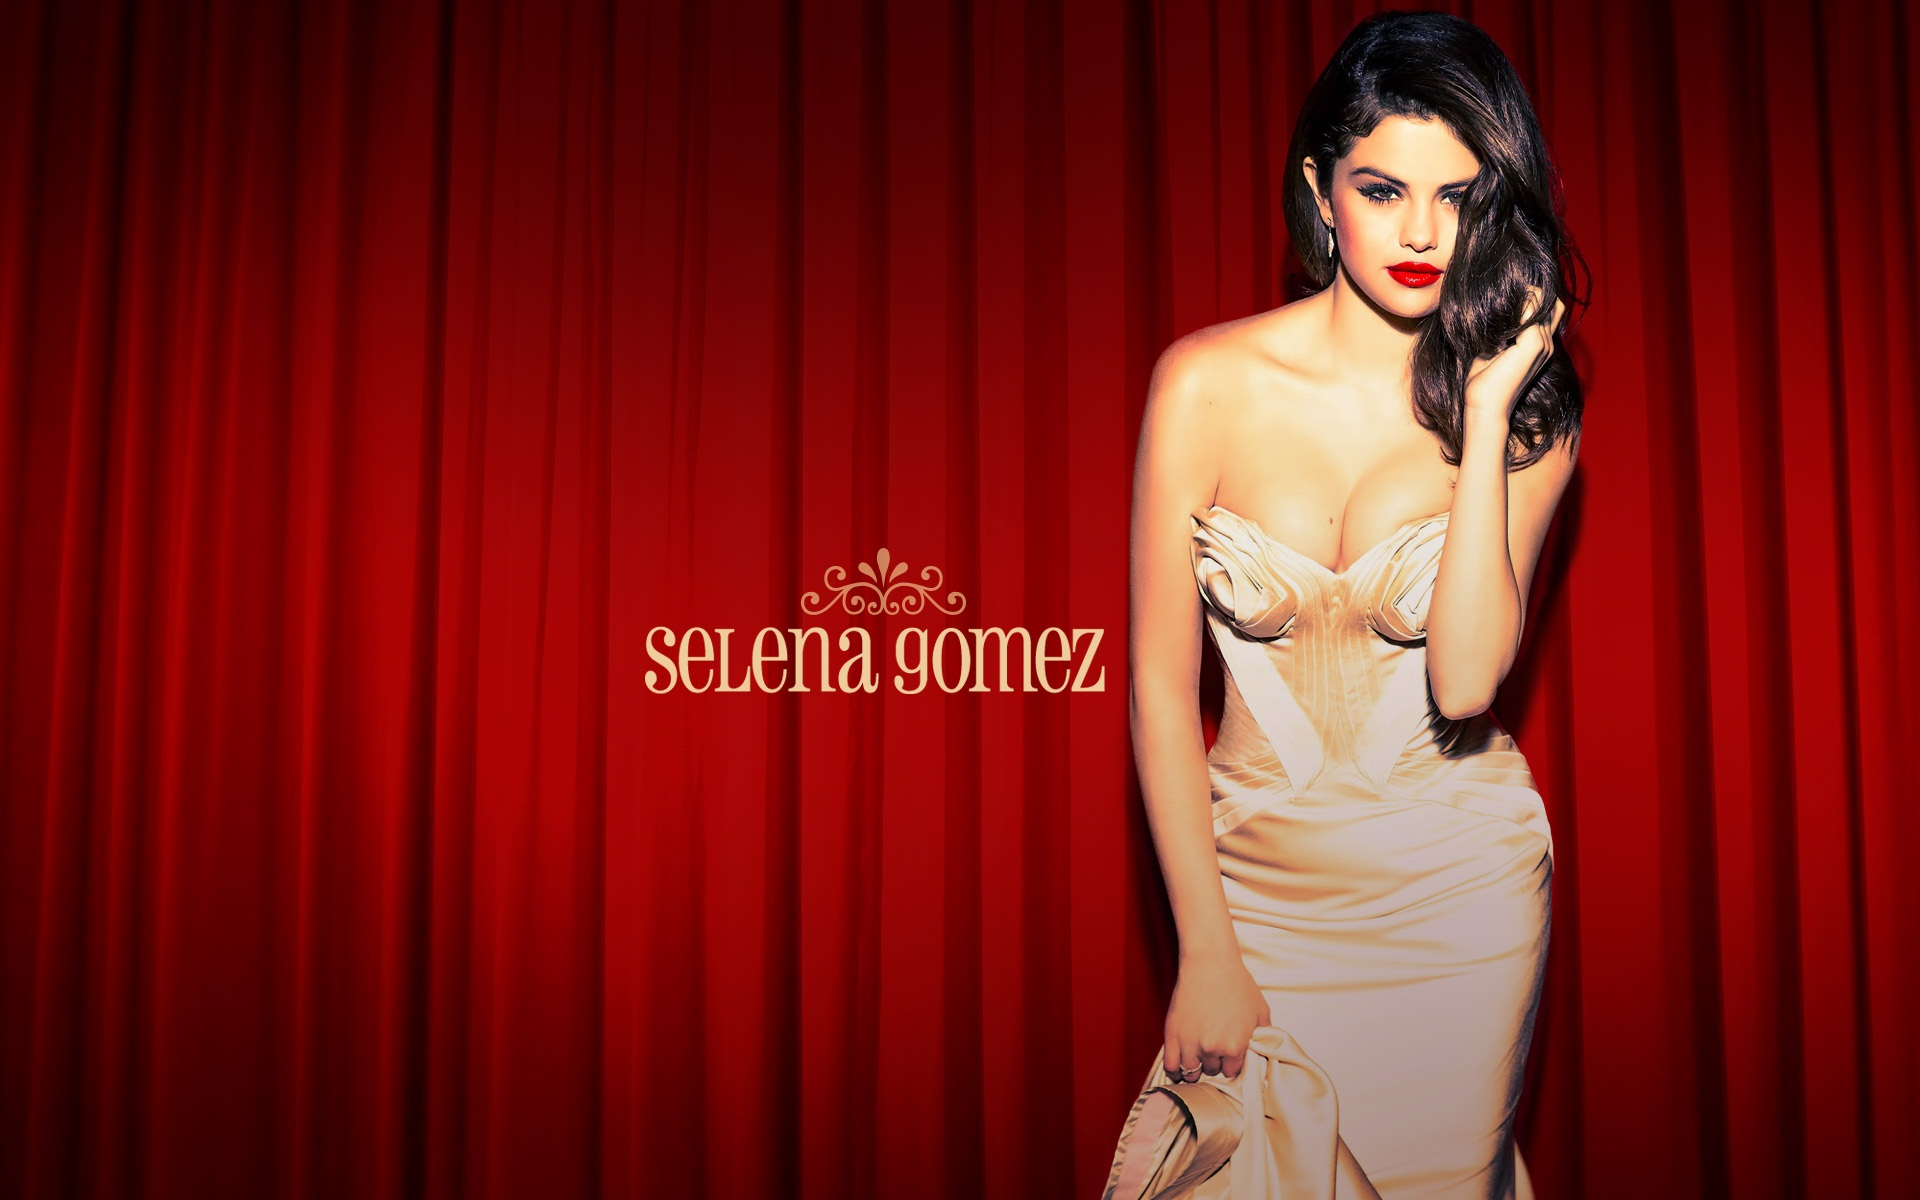 Selena Gomez Sexy And Hot Wallpapers  Wide Screen Wallpaper 1080P,2K,4K-6497